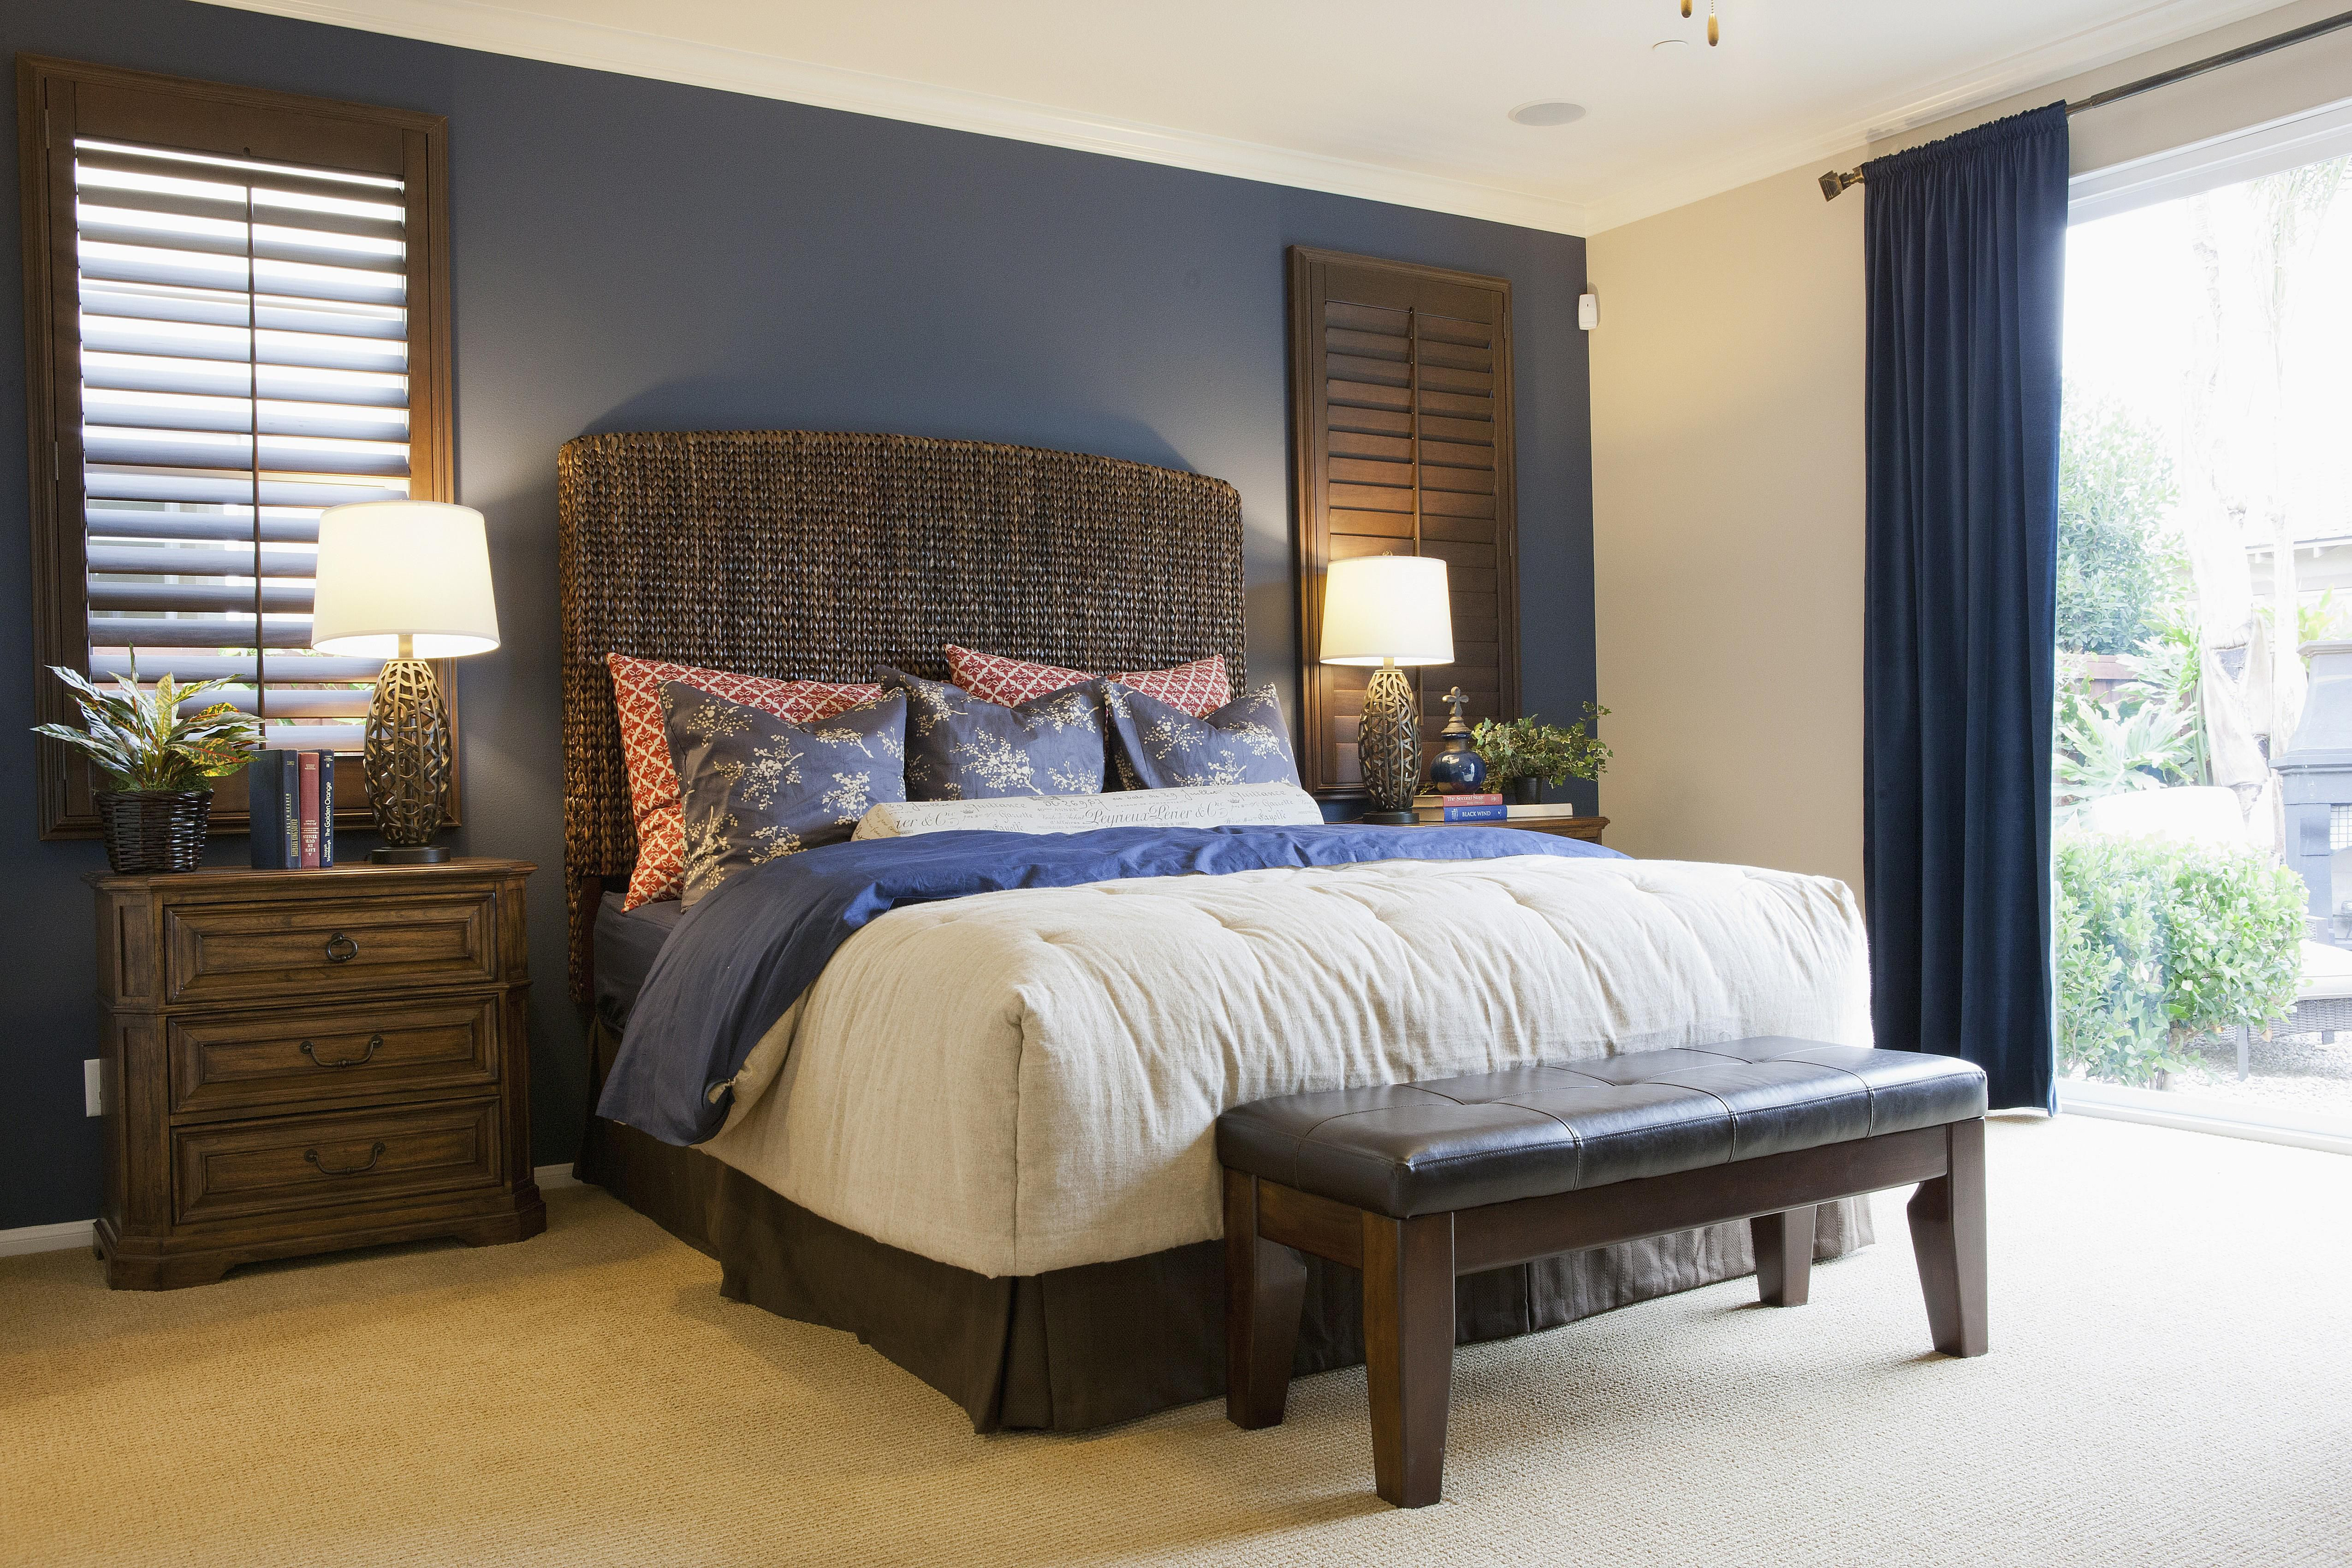 Best ideas about Accent Walls Ideas Bedroom . Save or Pin How to Choose an Accent Wall and Color in a Bedroom Now.